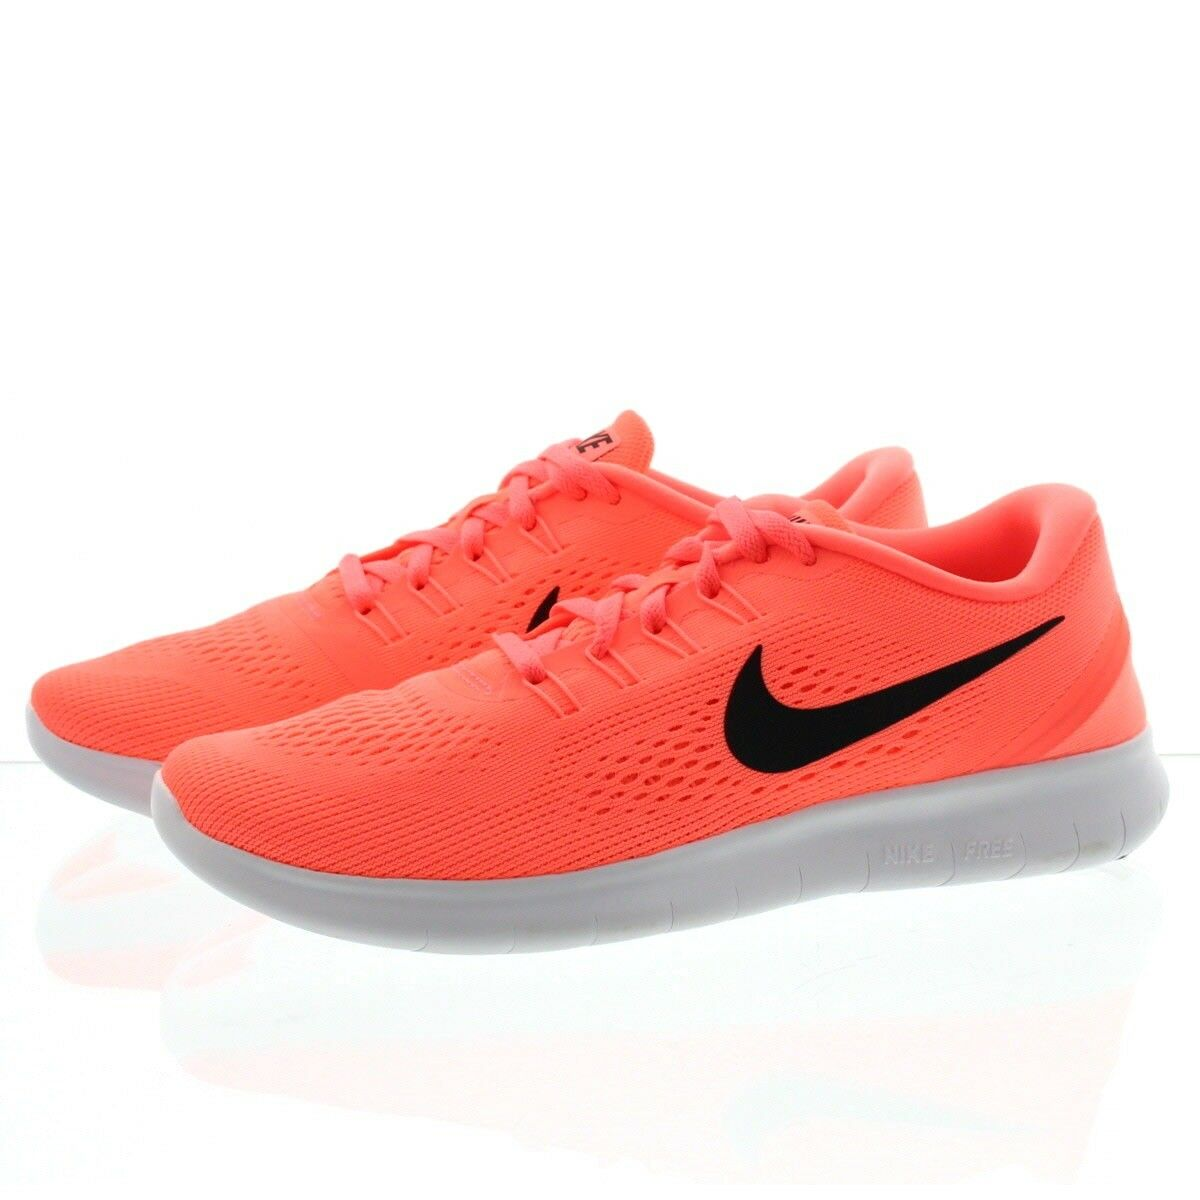 da080bd91210e WMNS Nike RN 831509-802 Lifestyle Running Shoes Casual Trainers Size ...